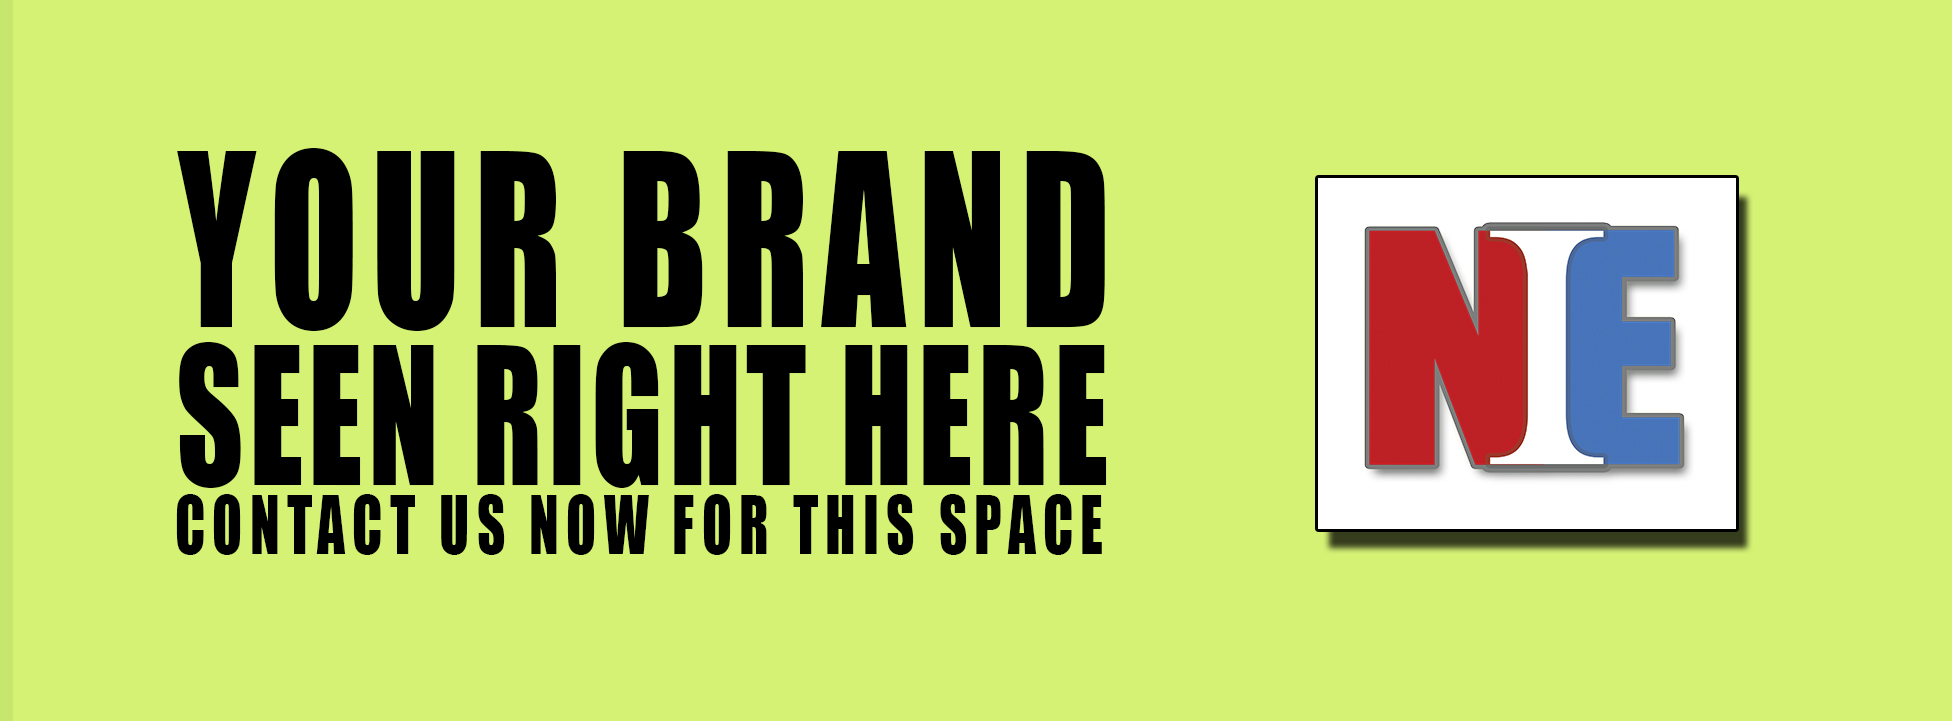 YOUR BRAND SEEN RIGHT HERE ON NIE